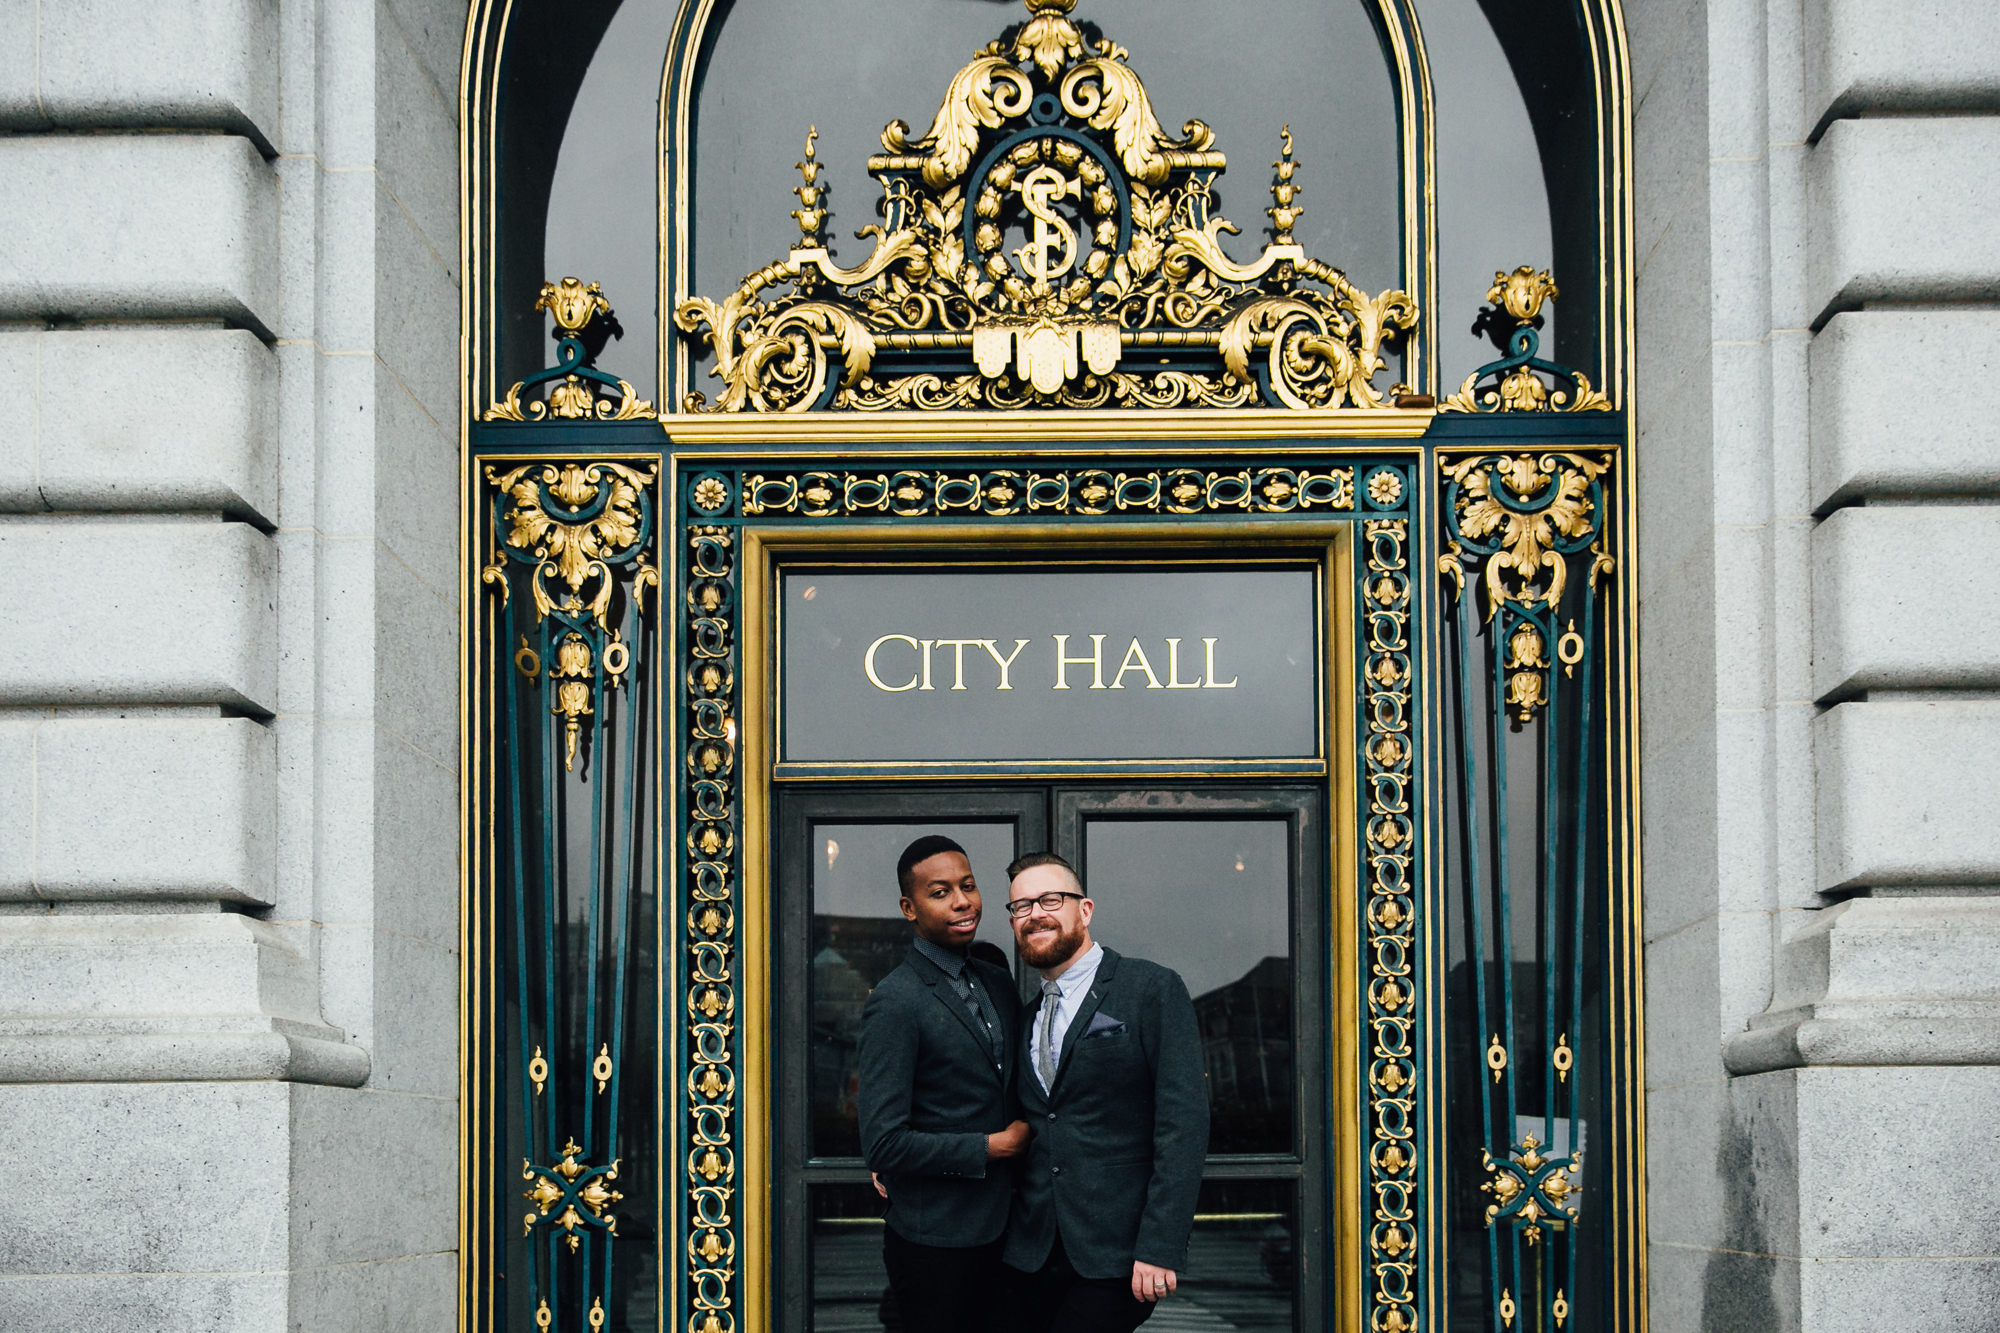 san-francisco-city-hall-wedding-marble-rye-photography-121520.JPG